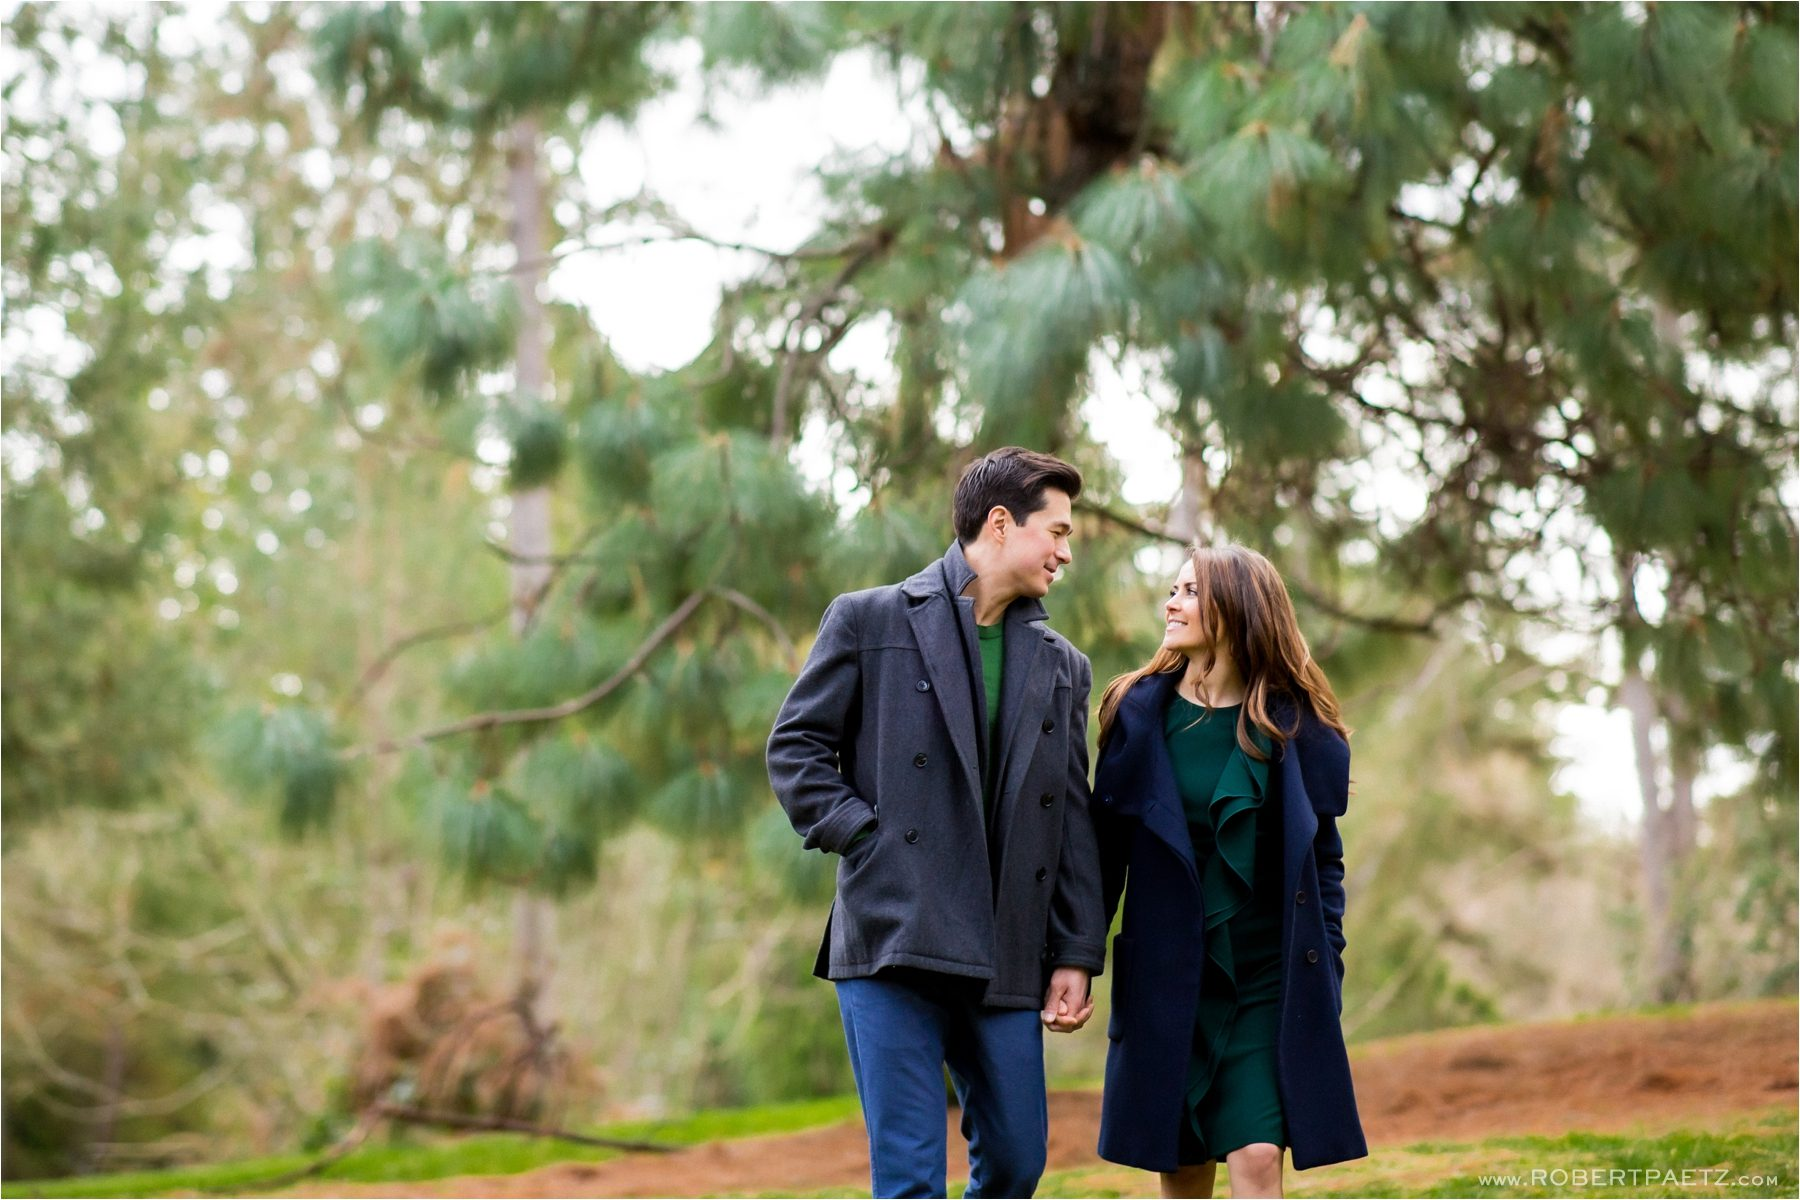 An engagement photography session in the South Lake Union area of Seattle, Washington; photographed by the west coast wedding photographer, Robert Paetz.